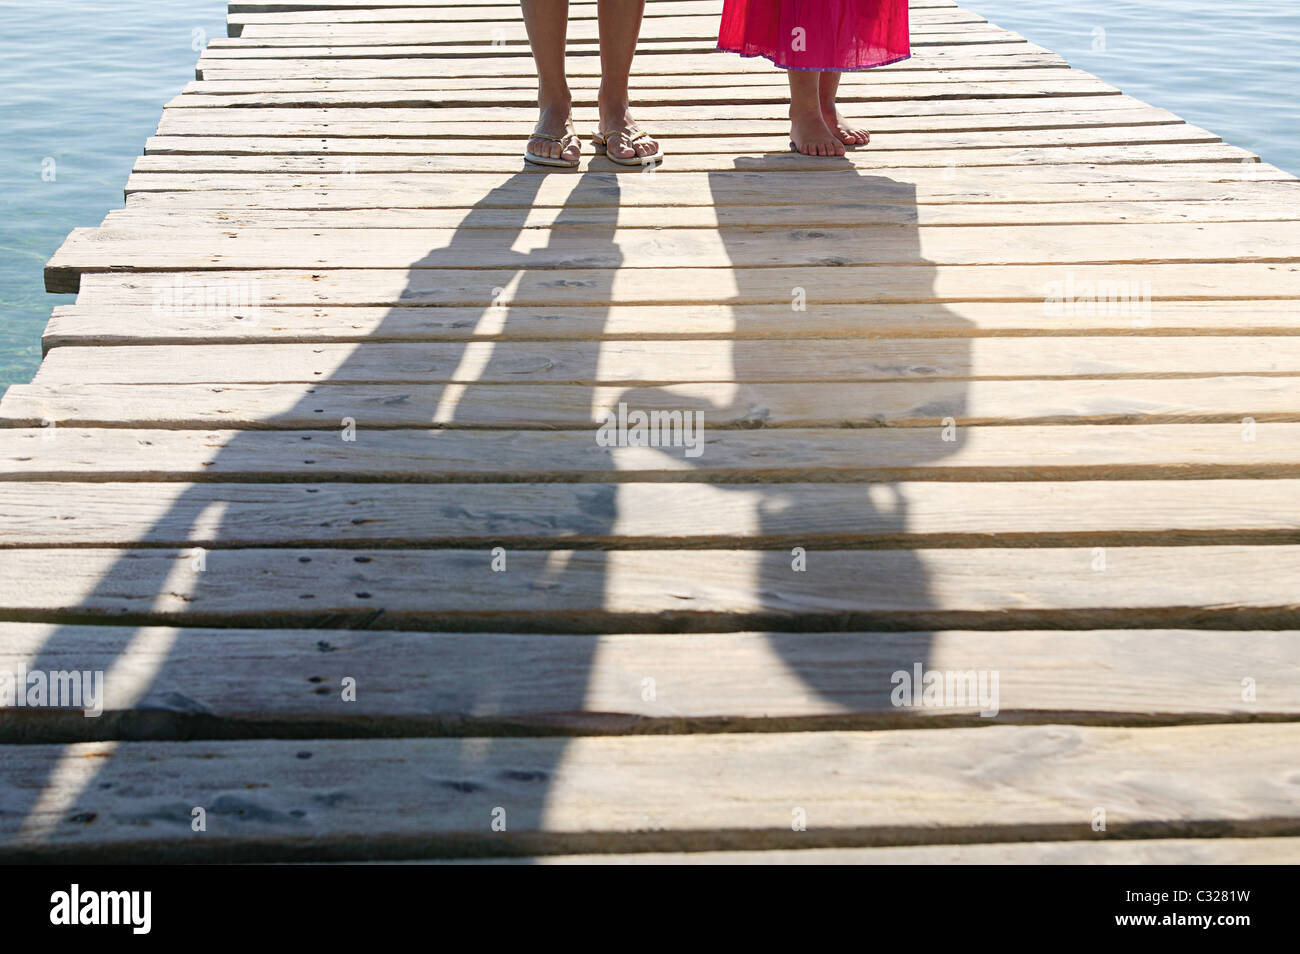 Shadows of child and adult on jetty - Stock Image